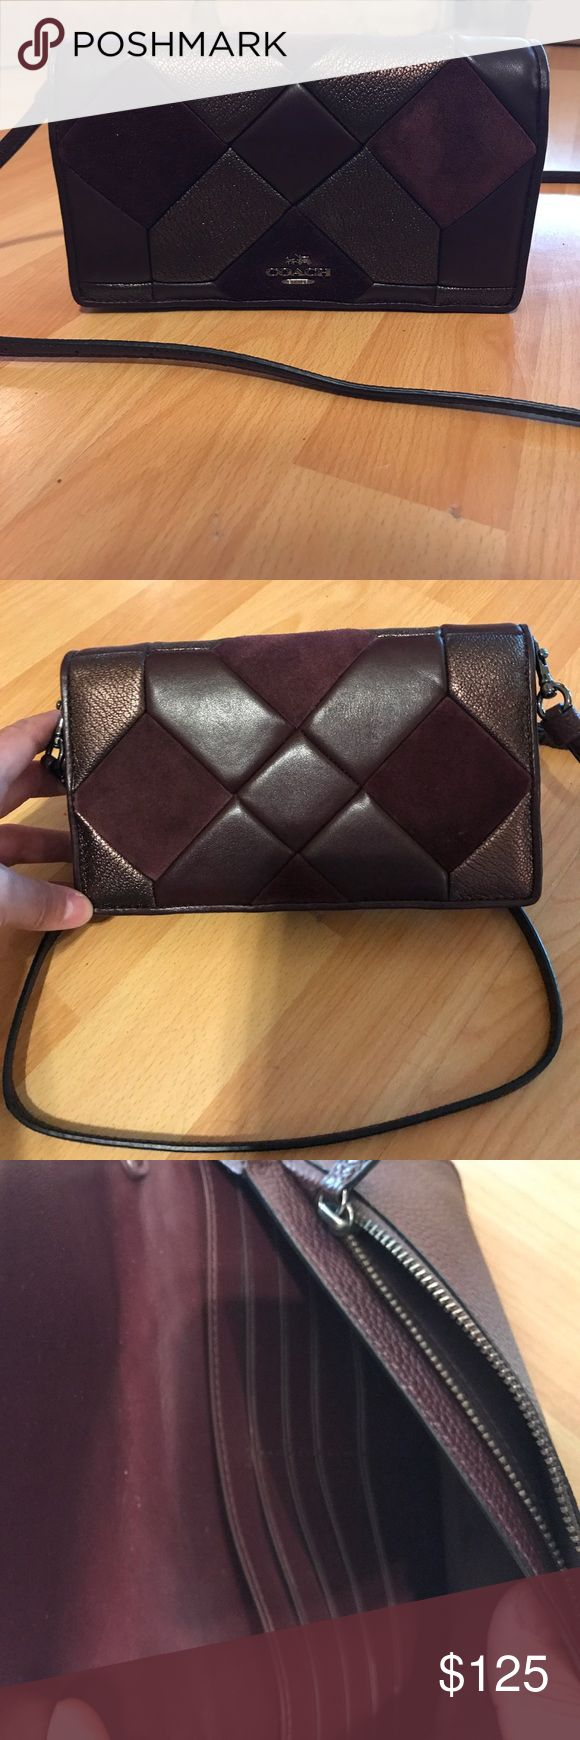 A perfect fit coach clutch model o blood bronze New conditions never used just I recibe a mother day but is not my style. Has 8 slots credit card +two poker inside one zip another regular model #55975DKLDB Coach Bags Crossbody Bags